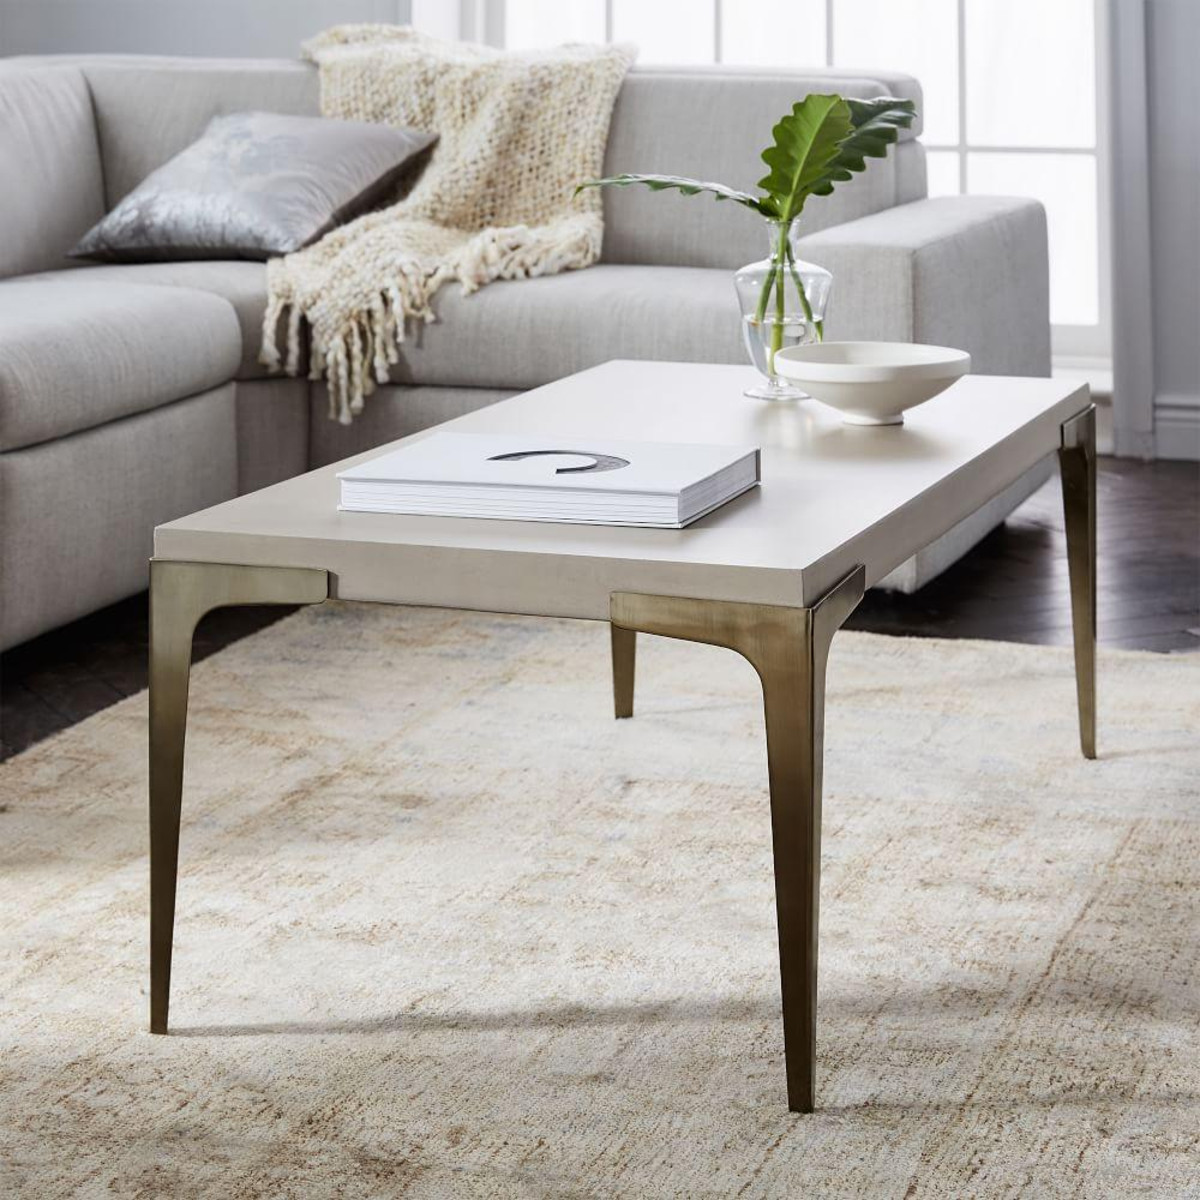 monoblock concrete coffee table metal legs tables damabianca info brass west elm accent ceramic ginger jar lamps super slim console black bedside lighting seattle cover for square